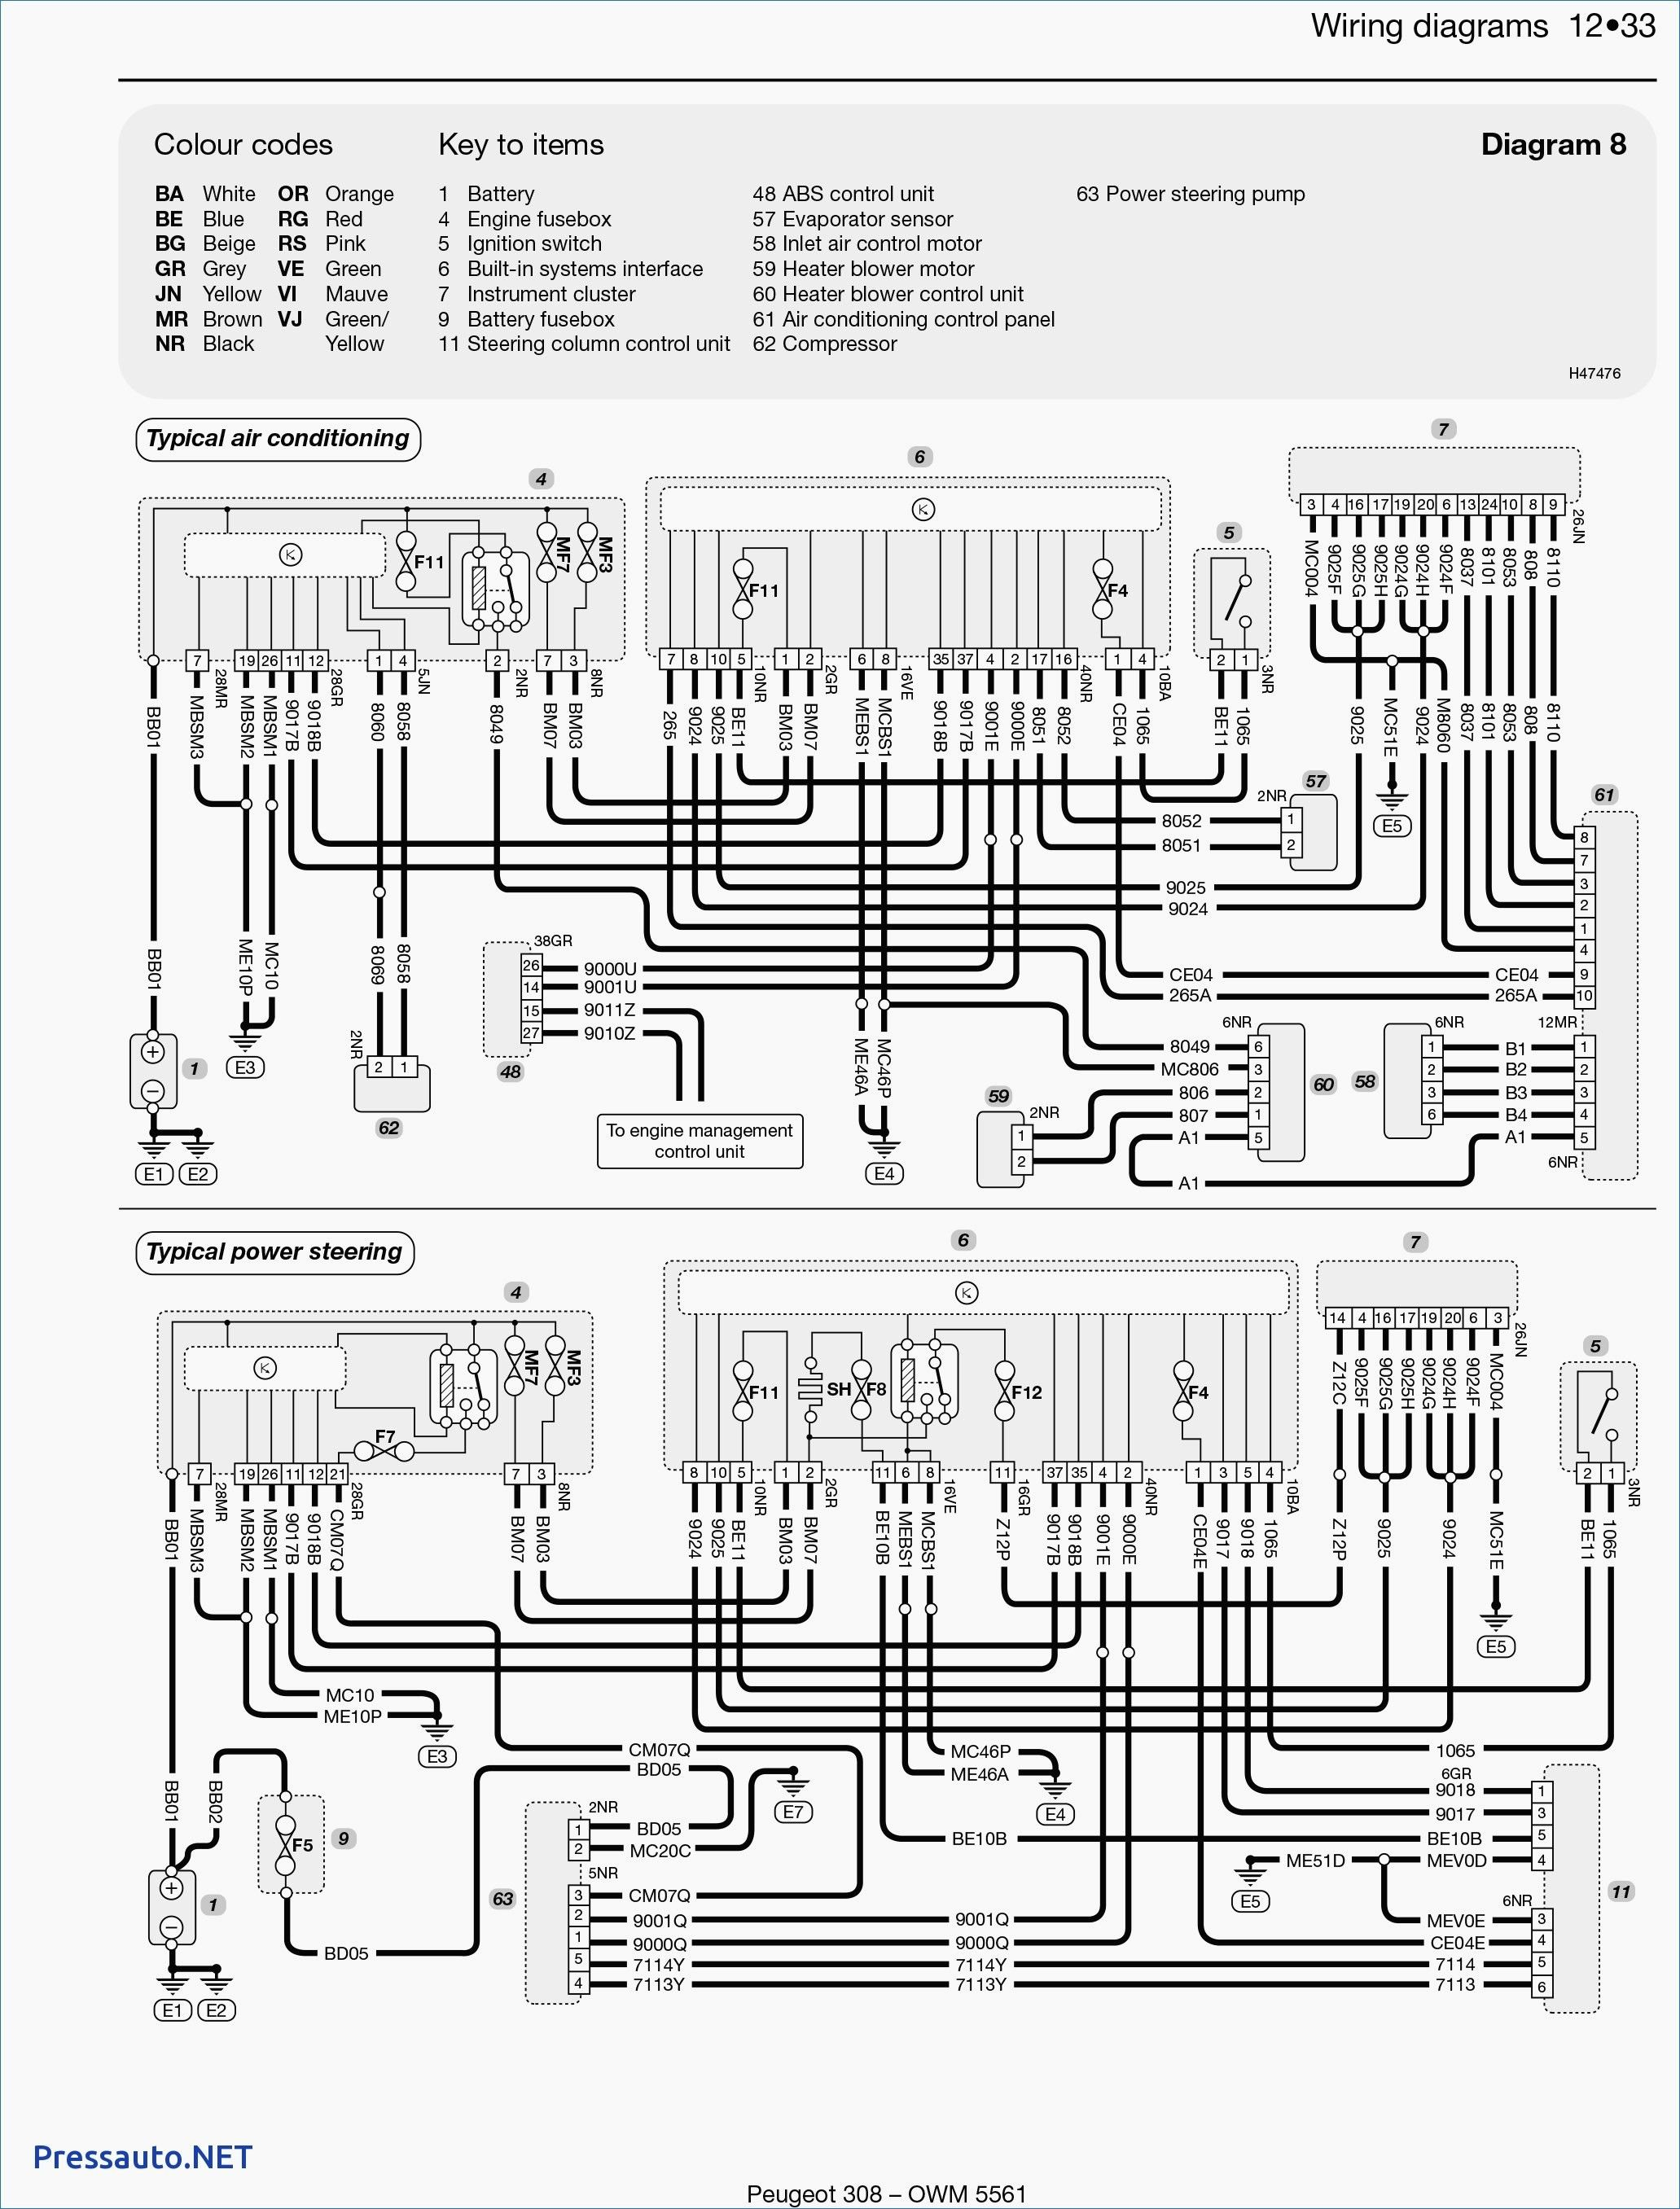 Peugeot Engine Diagrams Wiring Library Motor Blower 405 Diagram For 206 Stereo Best Of Fortable In